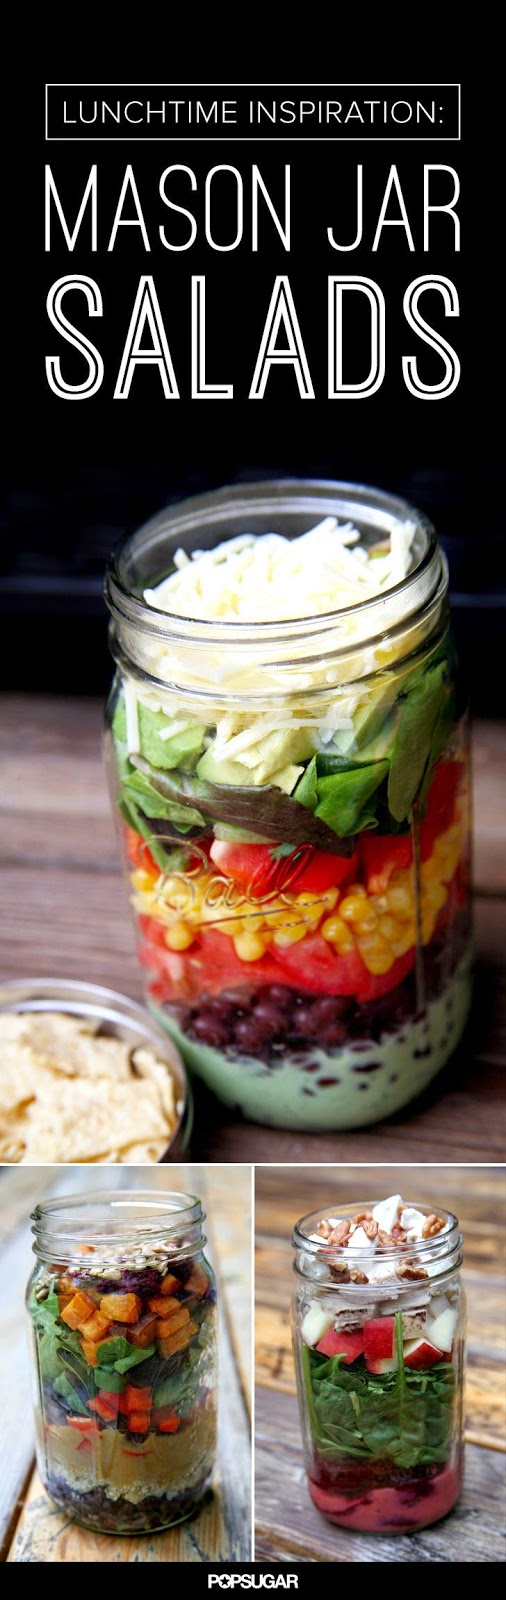 http://www.popsugar.com/fitness/Salad-Jar-Recipes-35452622?crlt.pid=camp.mgo7zKC3NBvR#photo-35452622